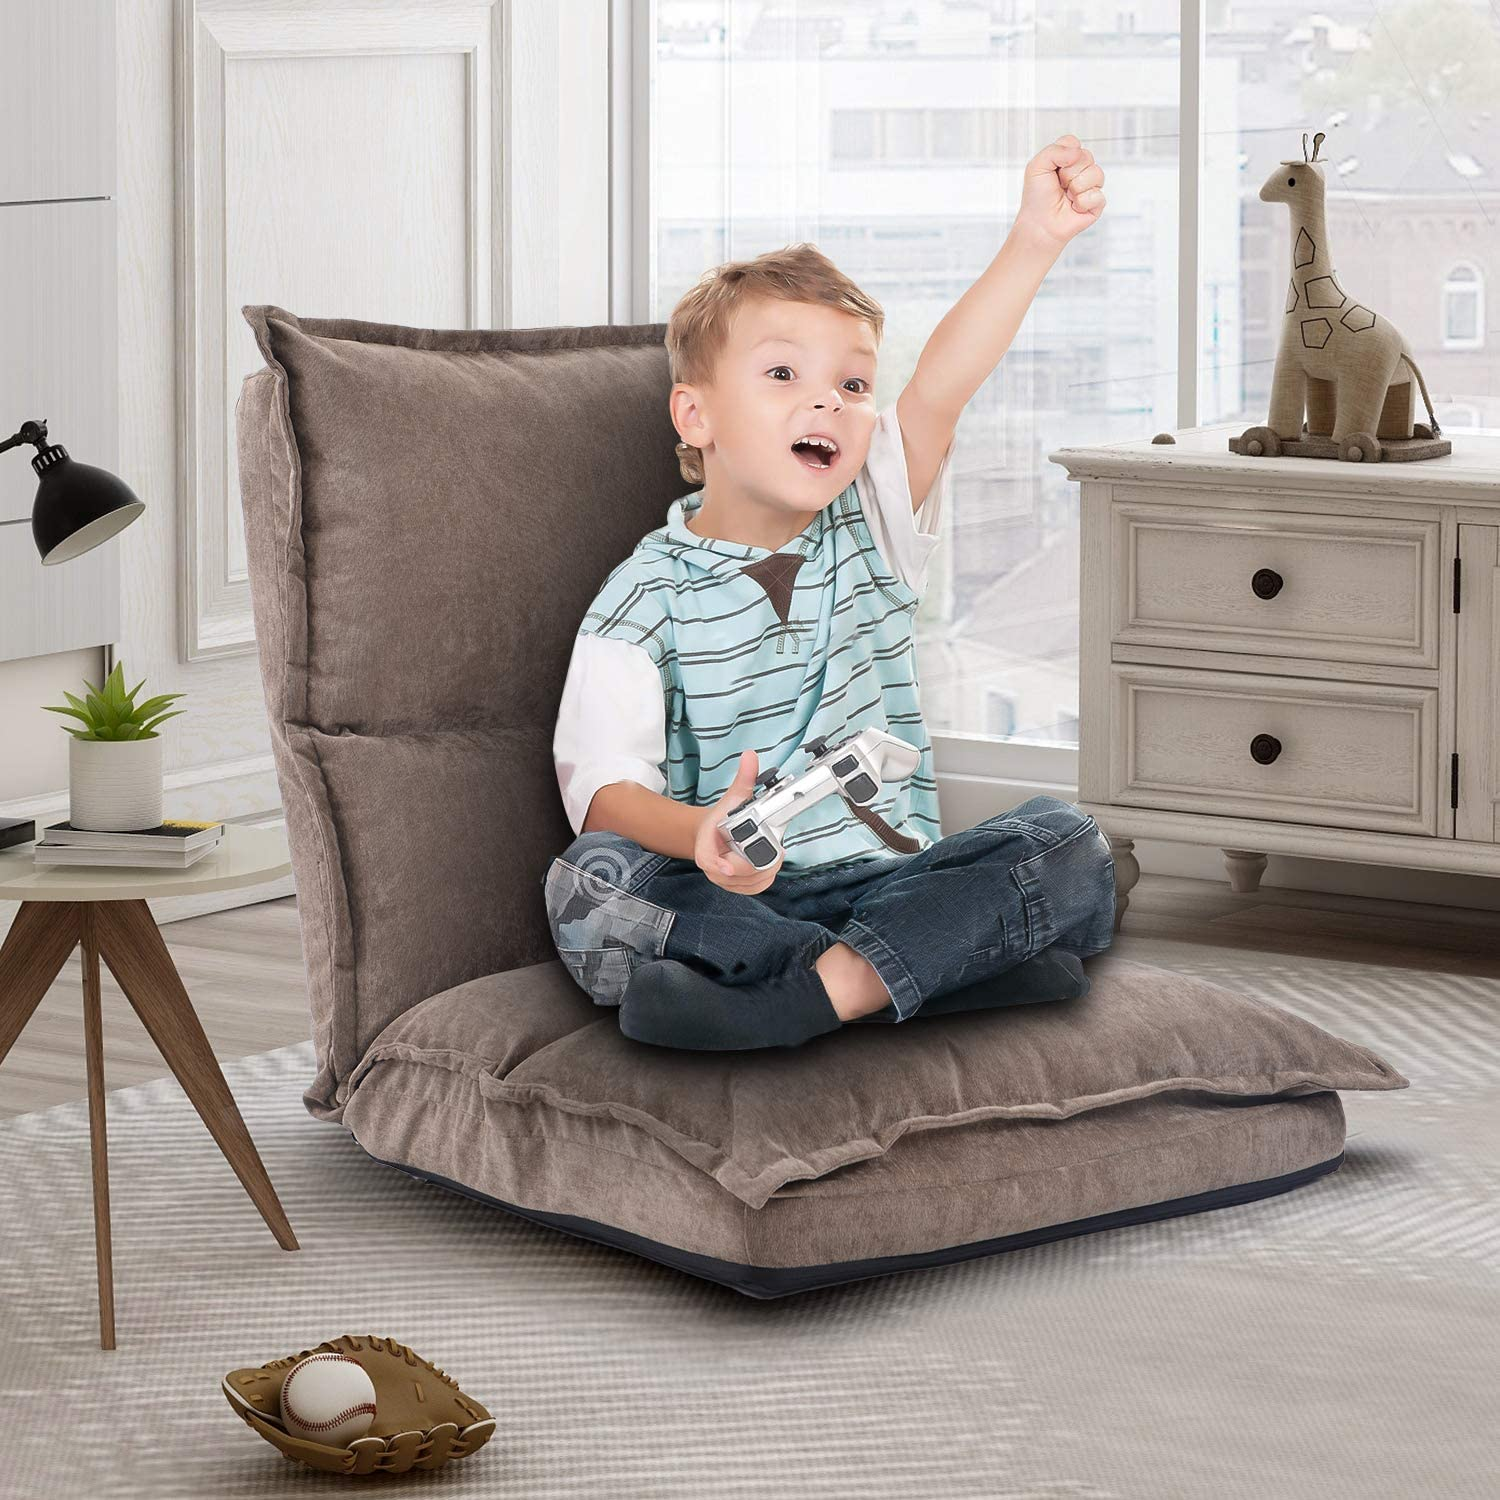 Amazon.com: Floor Gaming Chair for Kids, Fabric Upholstered